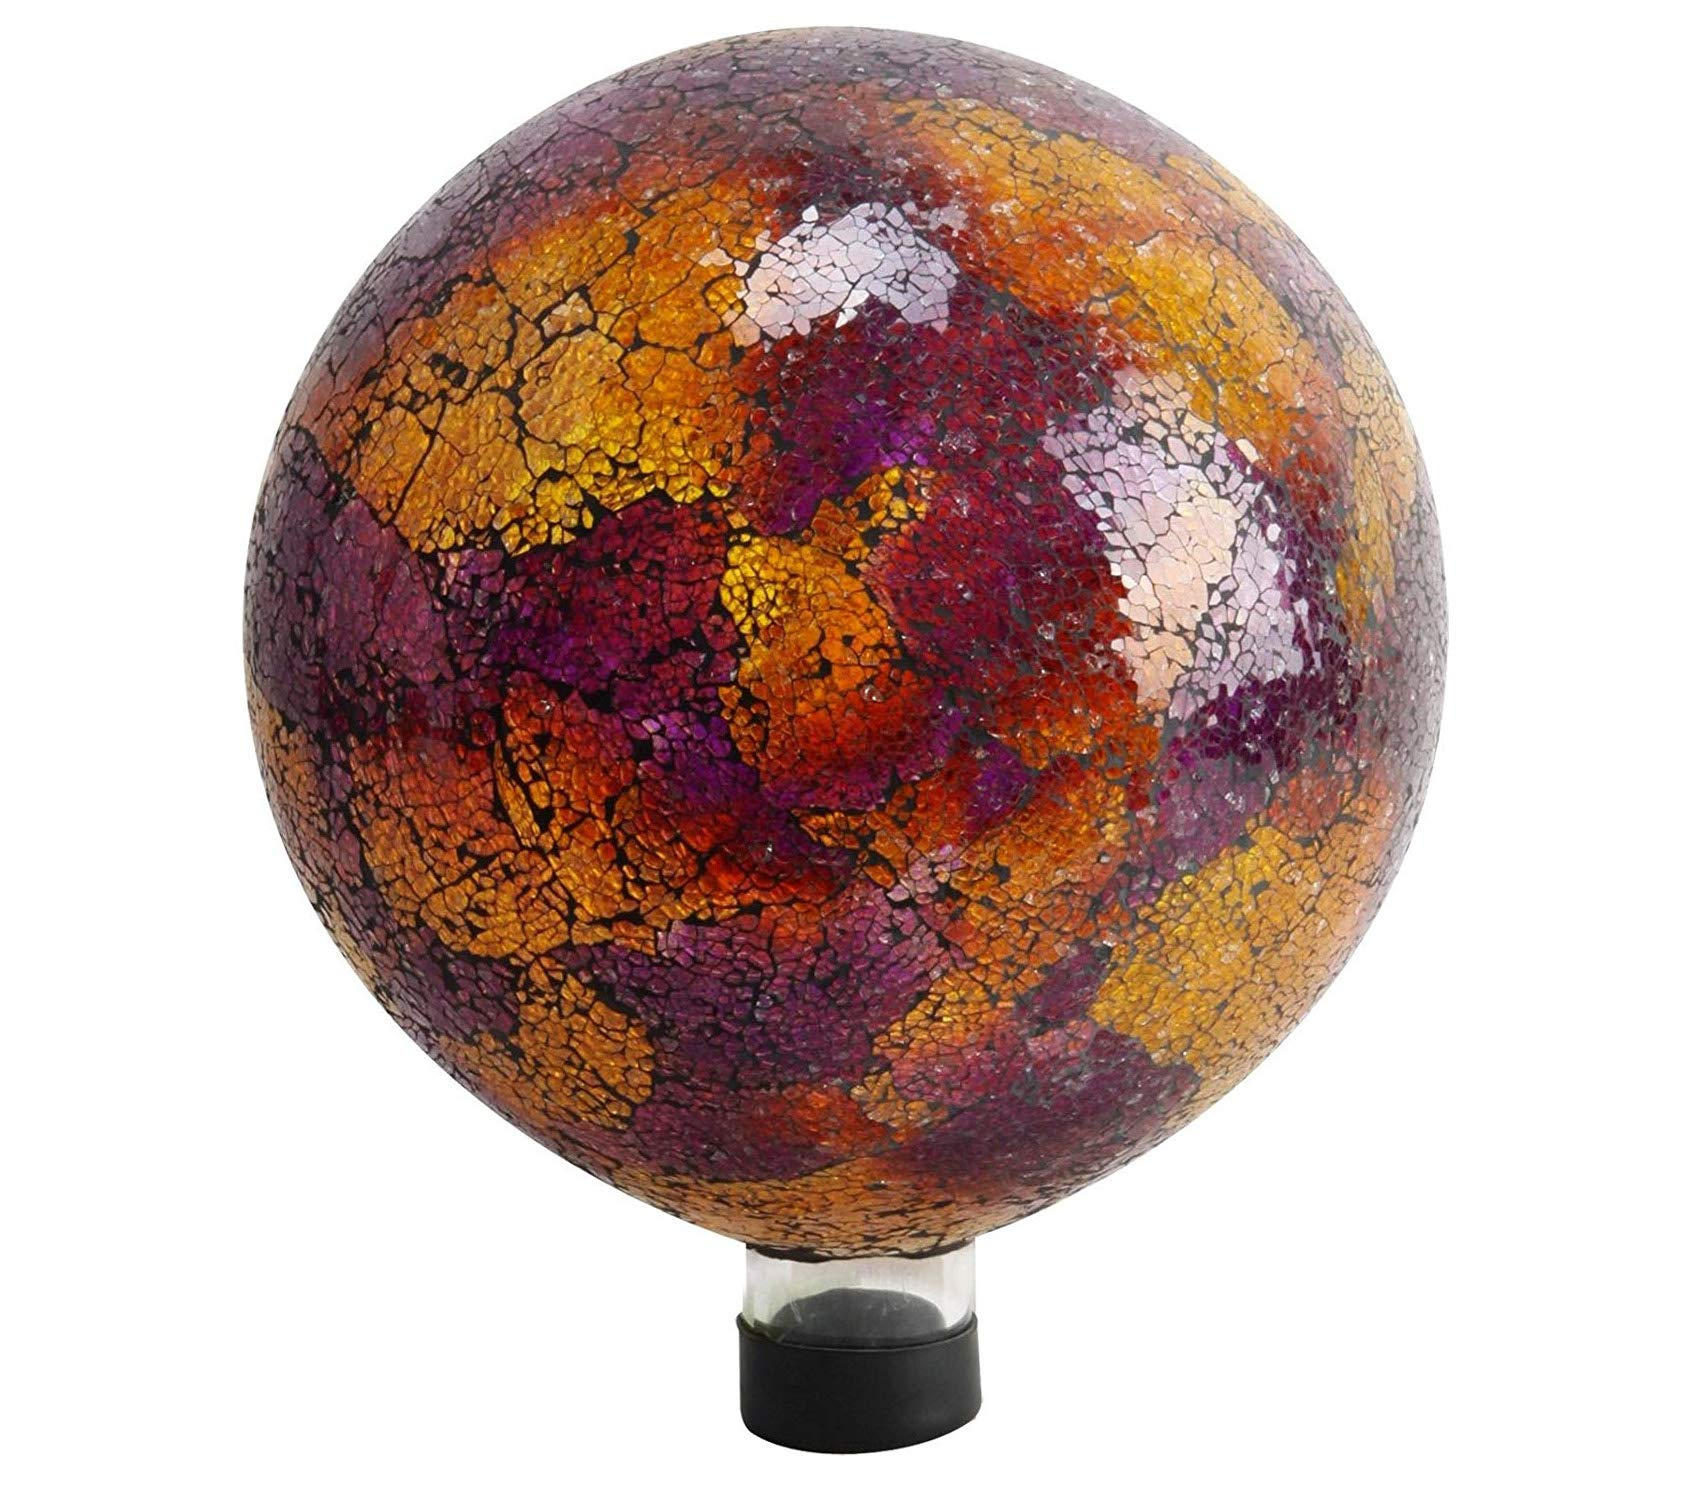 Outdoor Garden Backyard Décor Mosaic Gazing Globe, 10'', Pink/Yellow with Red by Garden Décor (Image #1)